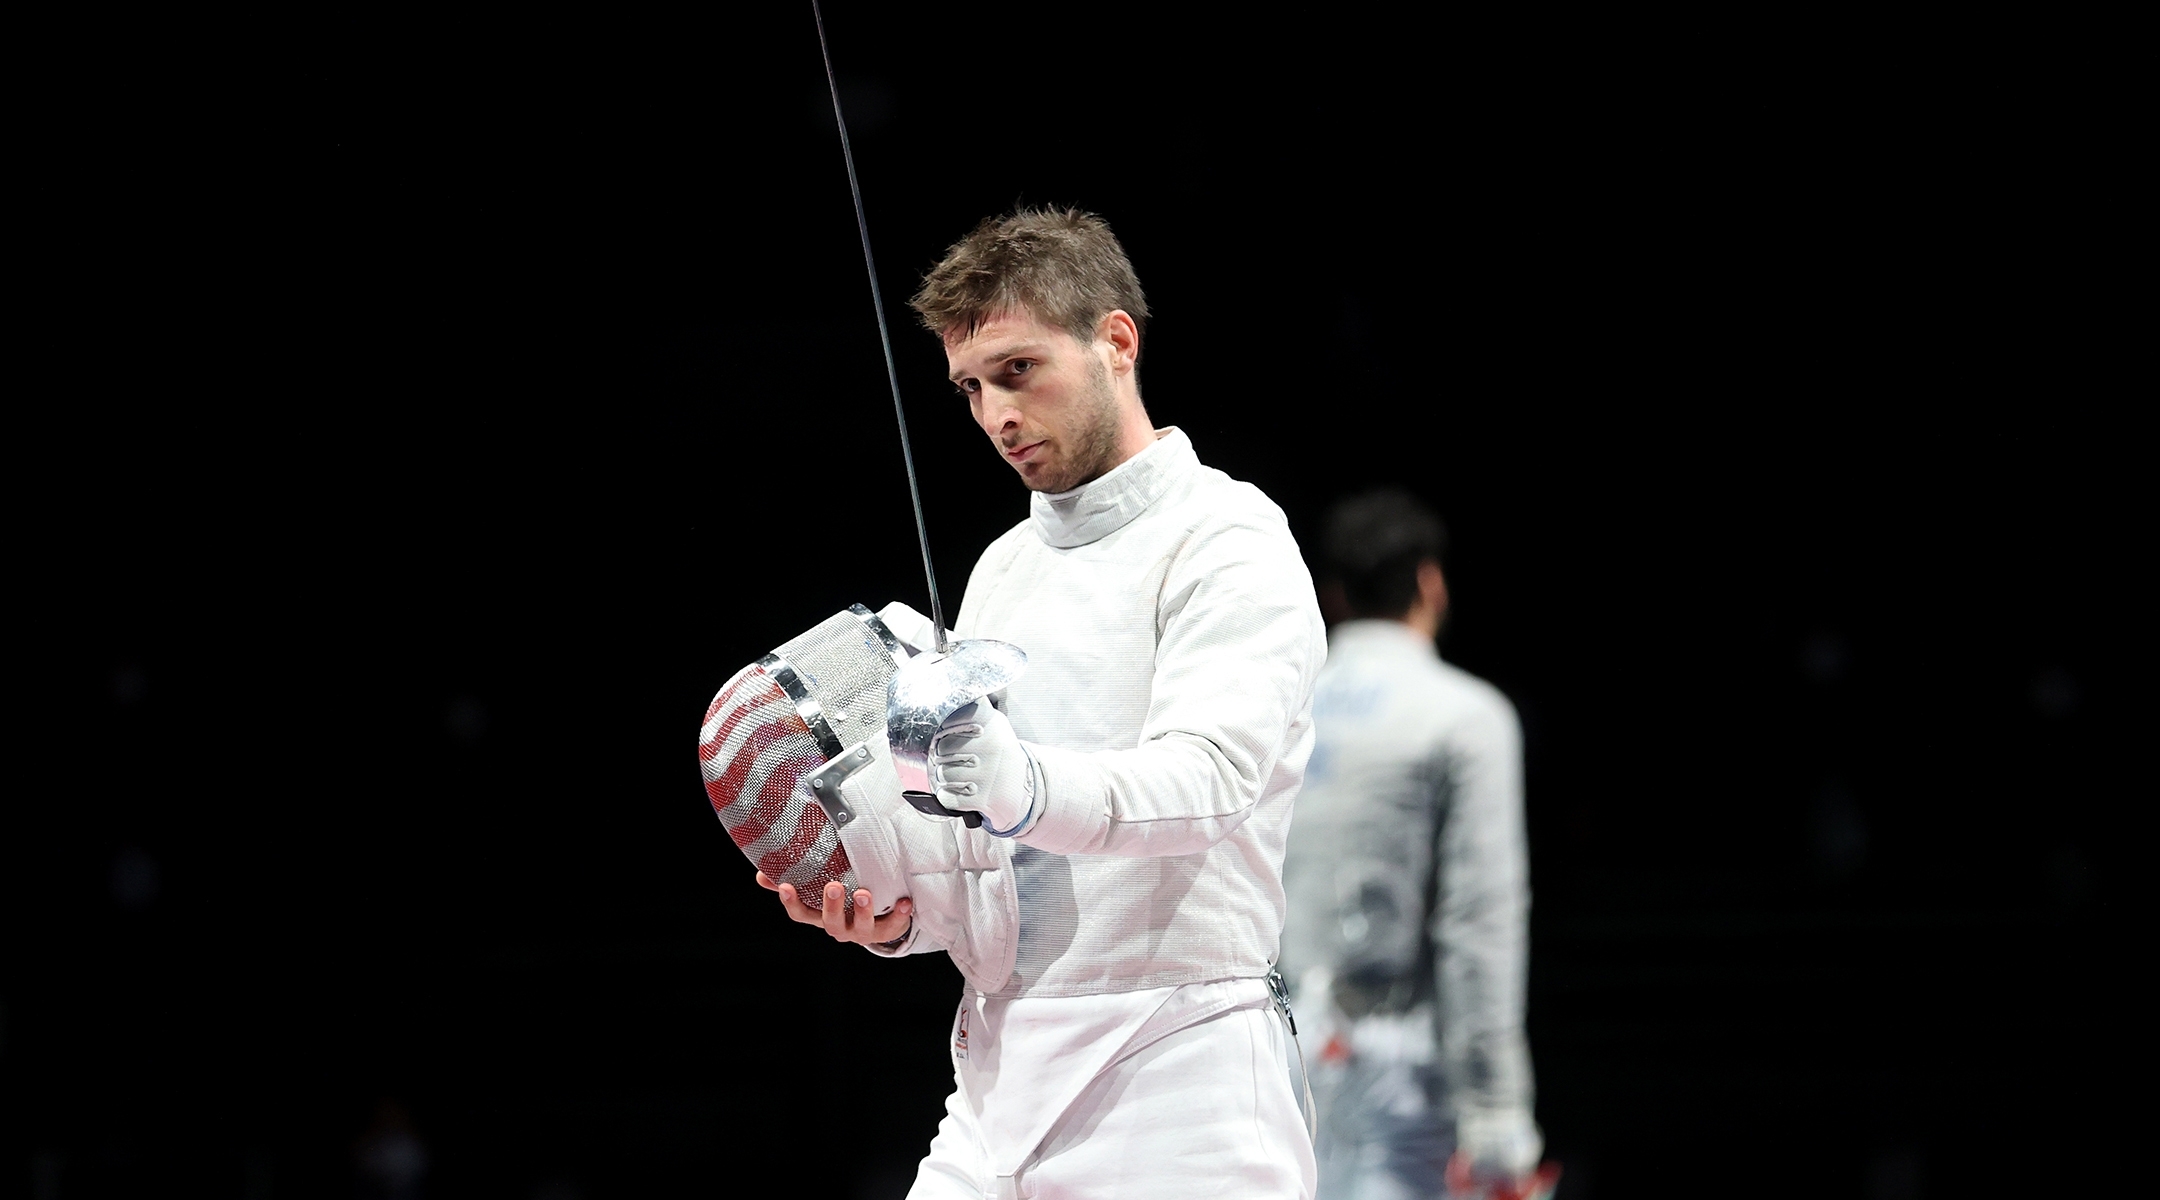 3 Jewish fencers fail to medal in individual events at Tokyo Olympics